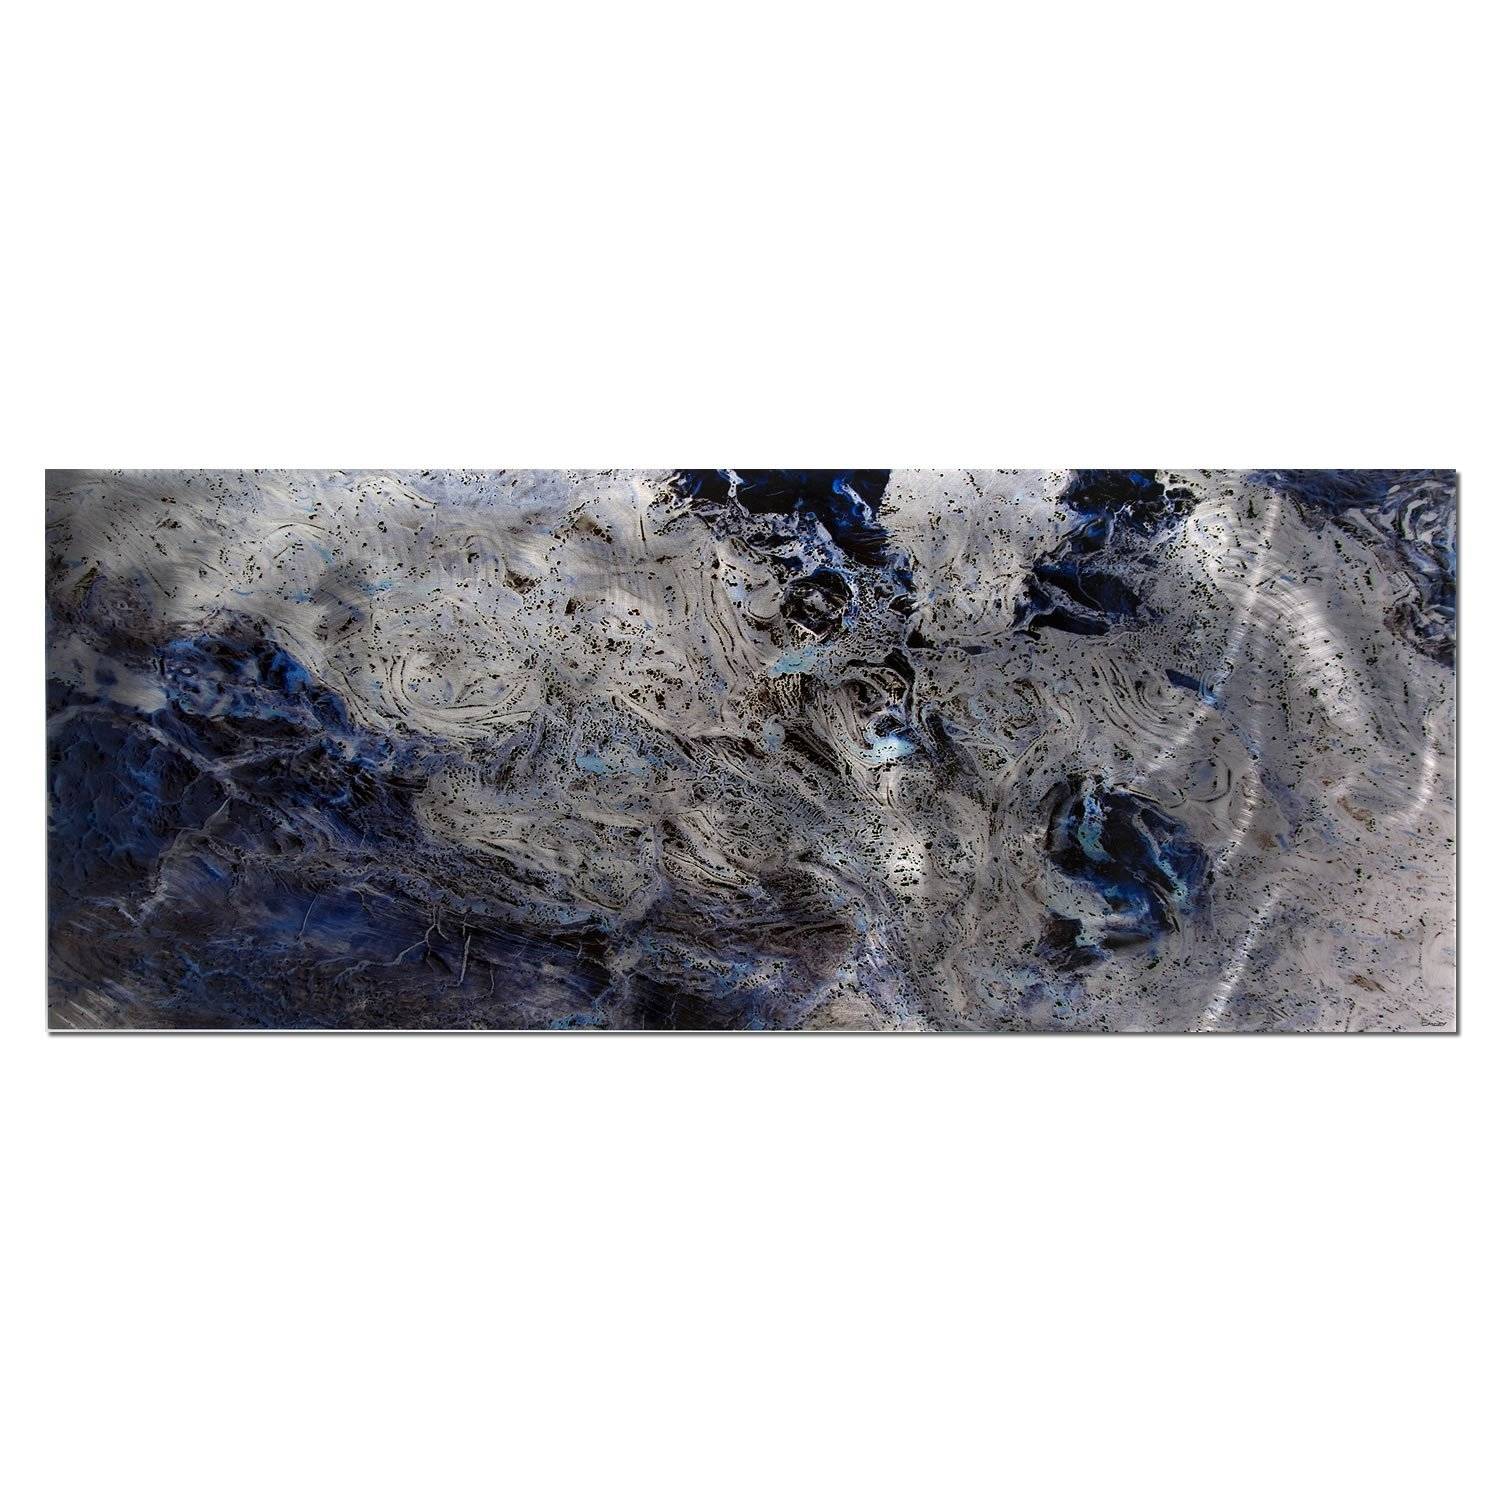 Cheap Blue Metal Art, Find Blue Metal Art Deals On Line At Alibaba With Regard To Latest Inexpensive Abstract Metal Wall Art (View 11 of 20)